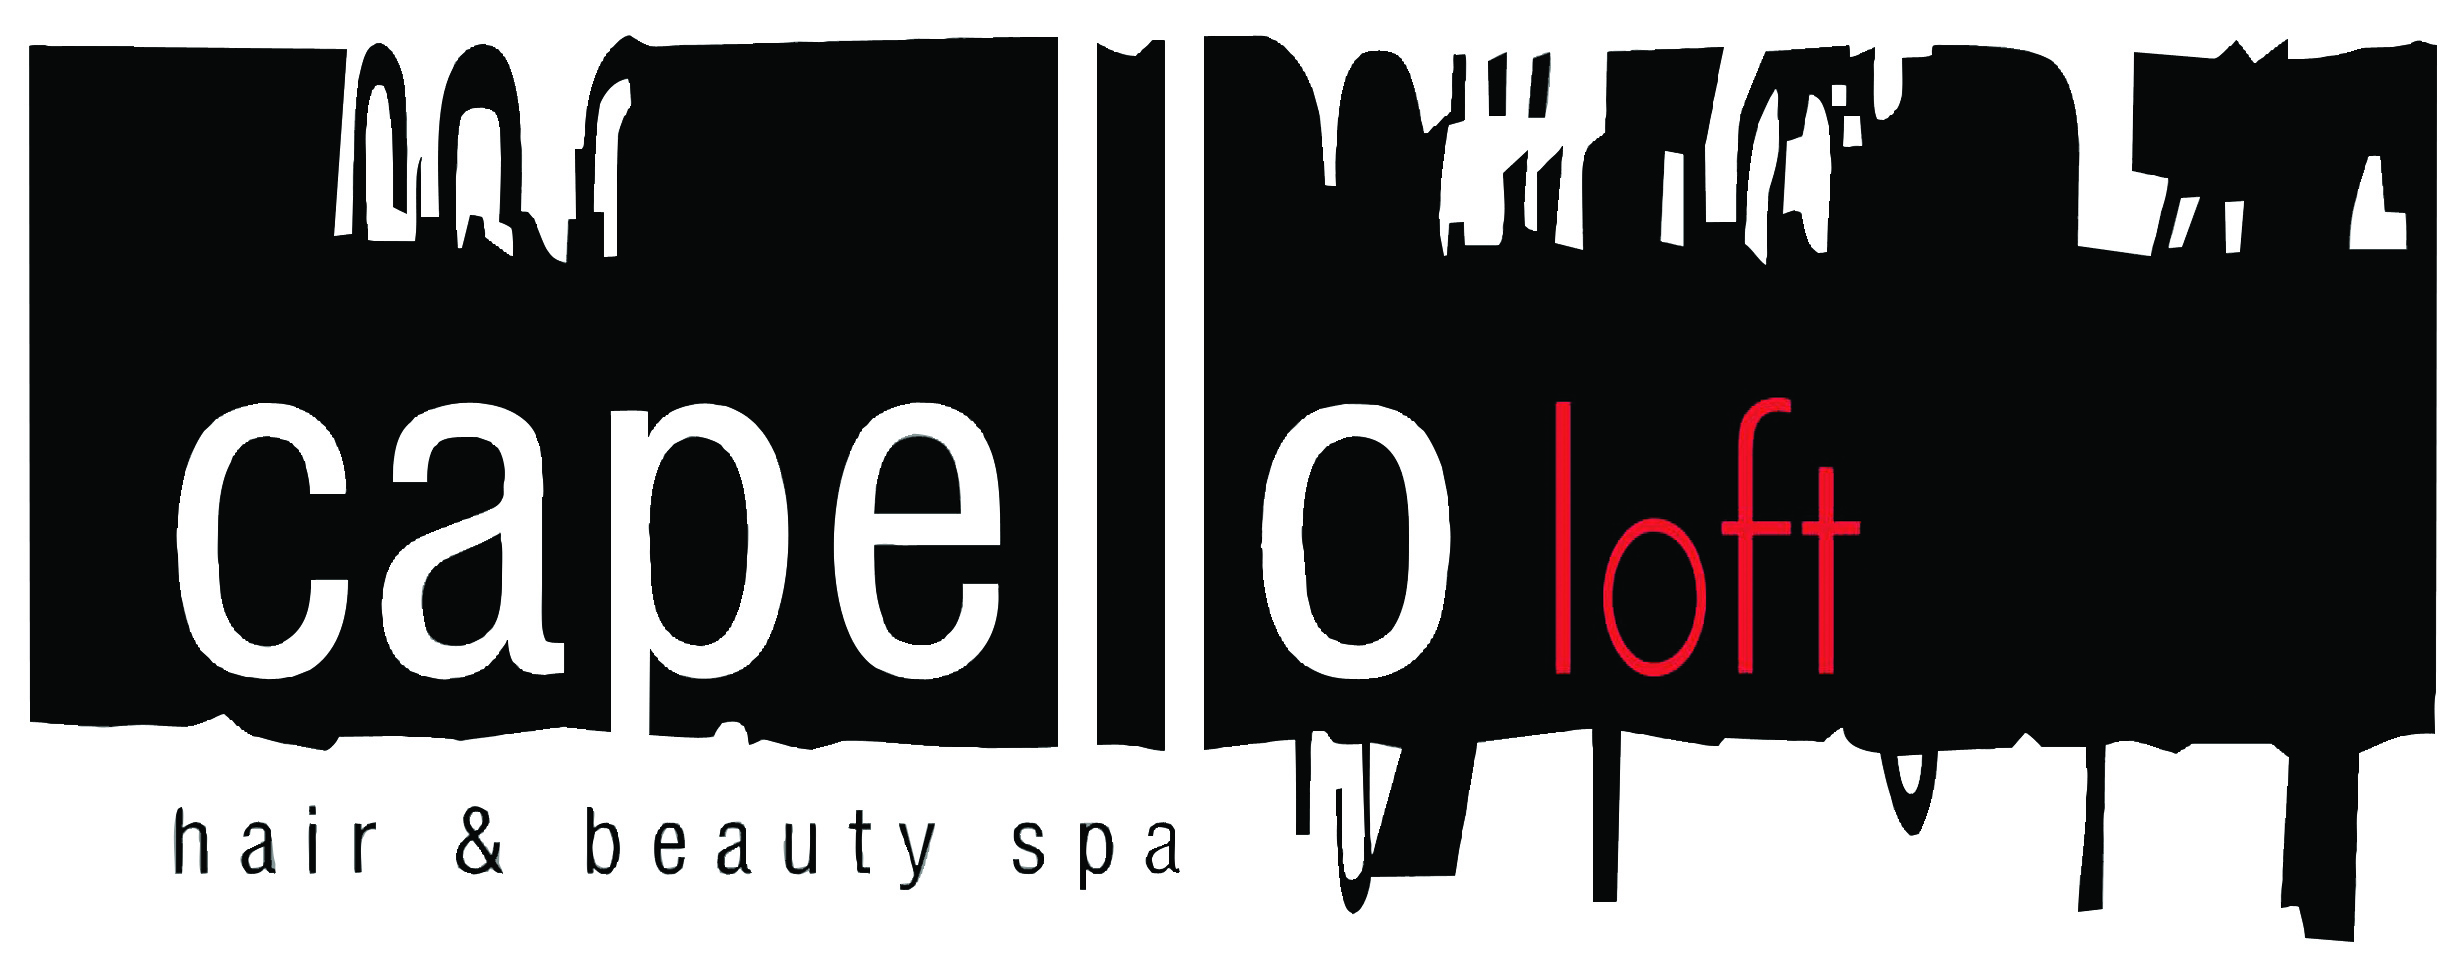 http://images.getcardable.com/sg/images/es/capello-loft-hair-beauty-spa.jpg